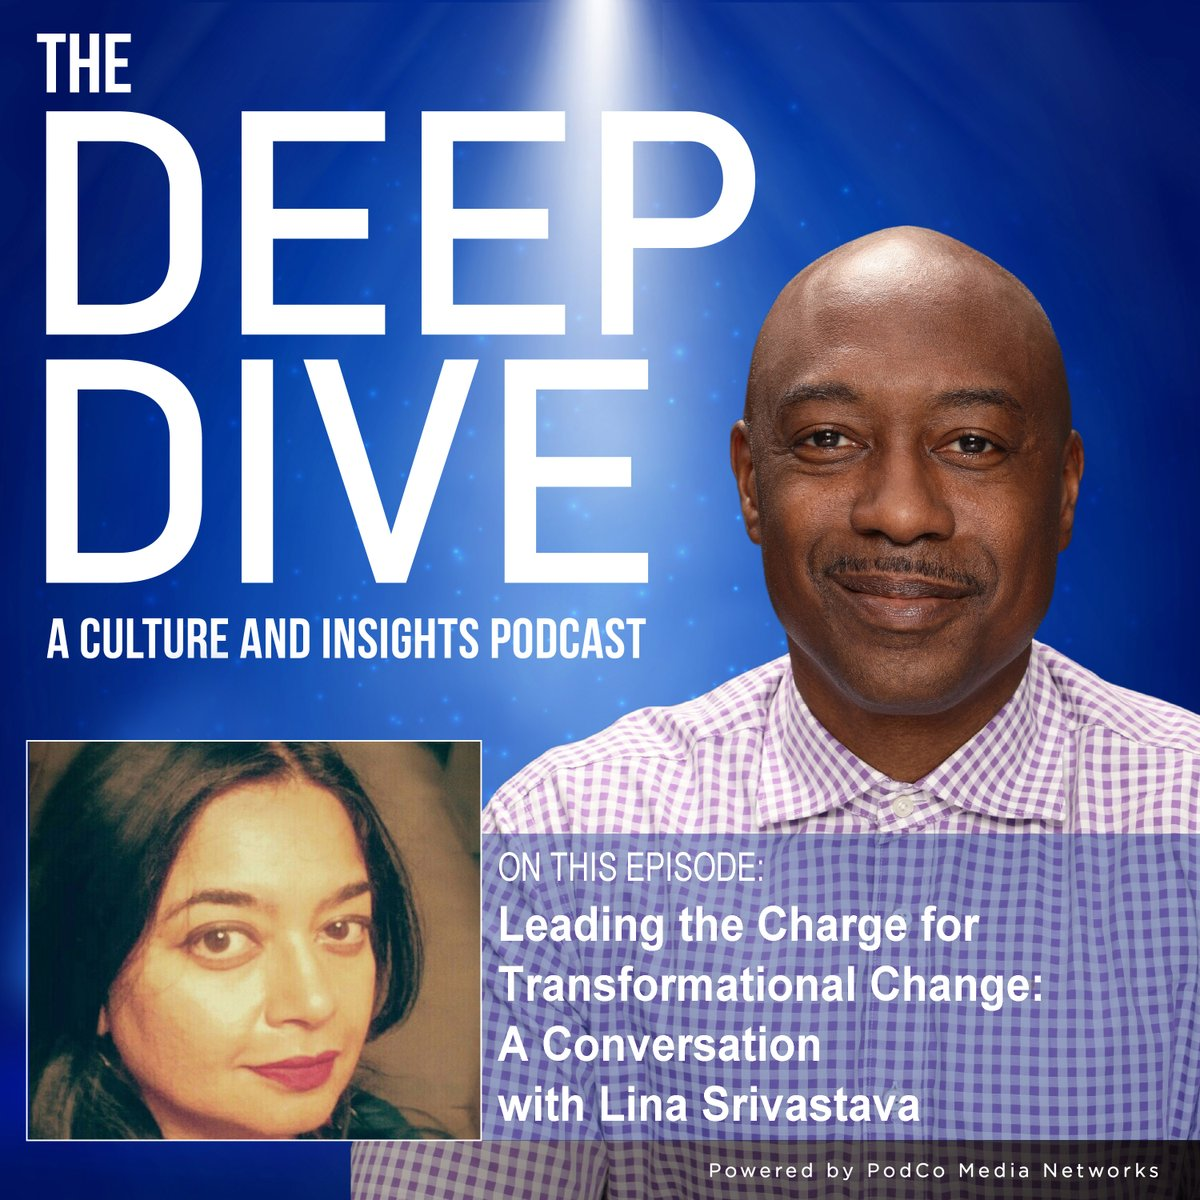 Such an honor to be interviewed on @FarFlungPhil's amazing podcast The Deep Dive, talking about what leading transformation might look like from this point forward.   Listen here: https://t.co/CZVamnNk61  (And subscribe for some amazing conversations!) https://t.co/vJOx5iyTpl